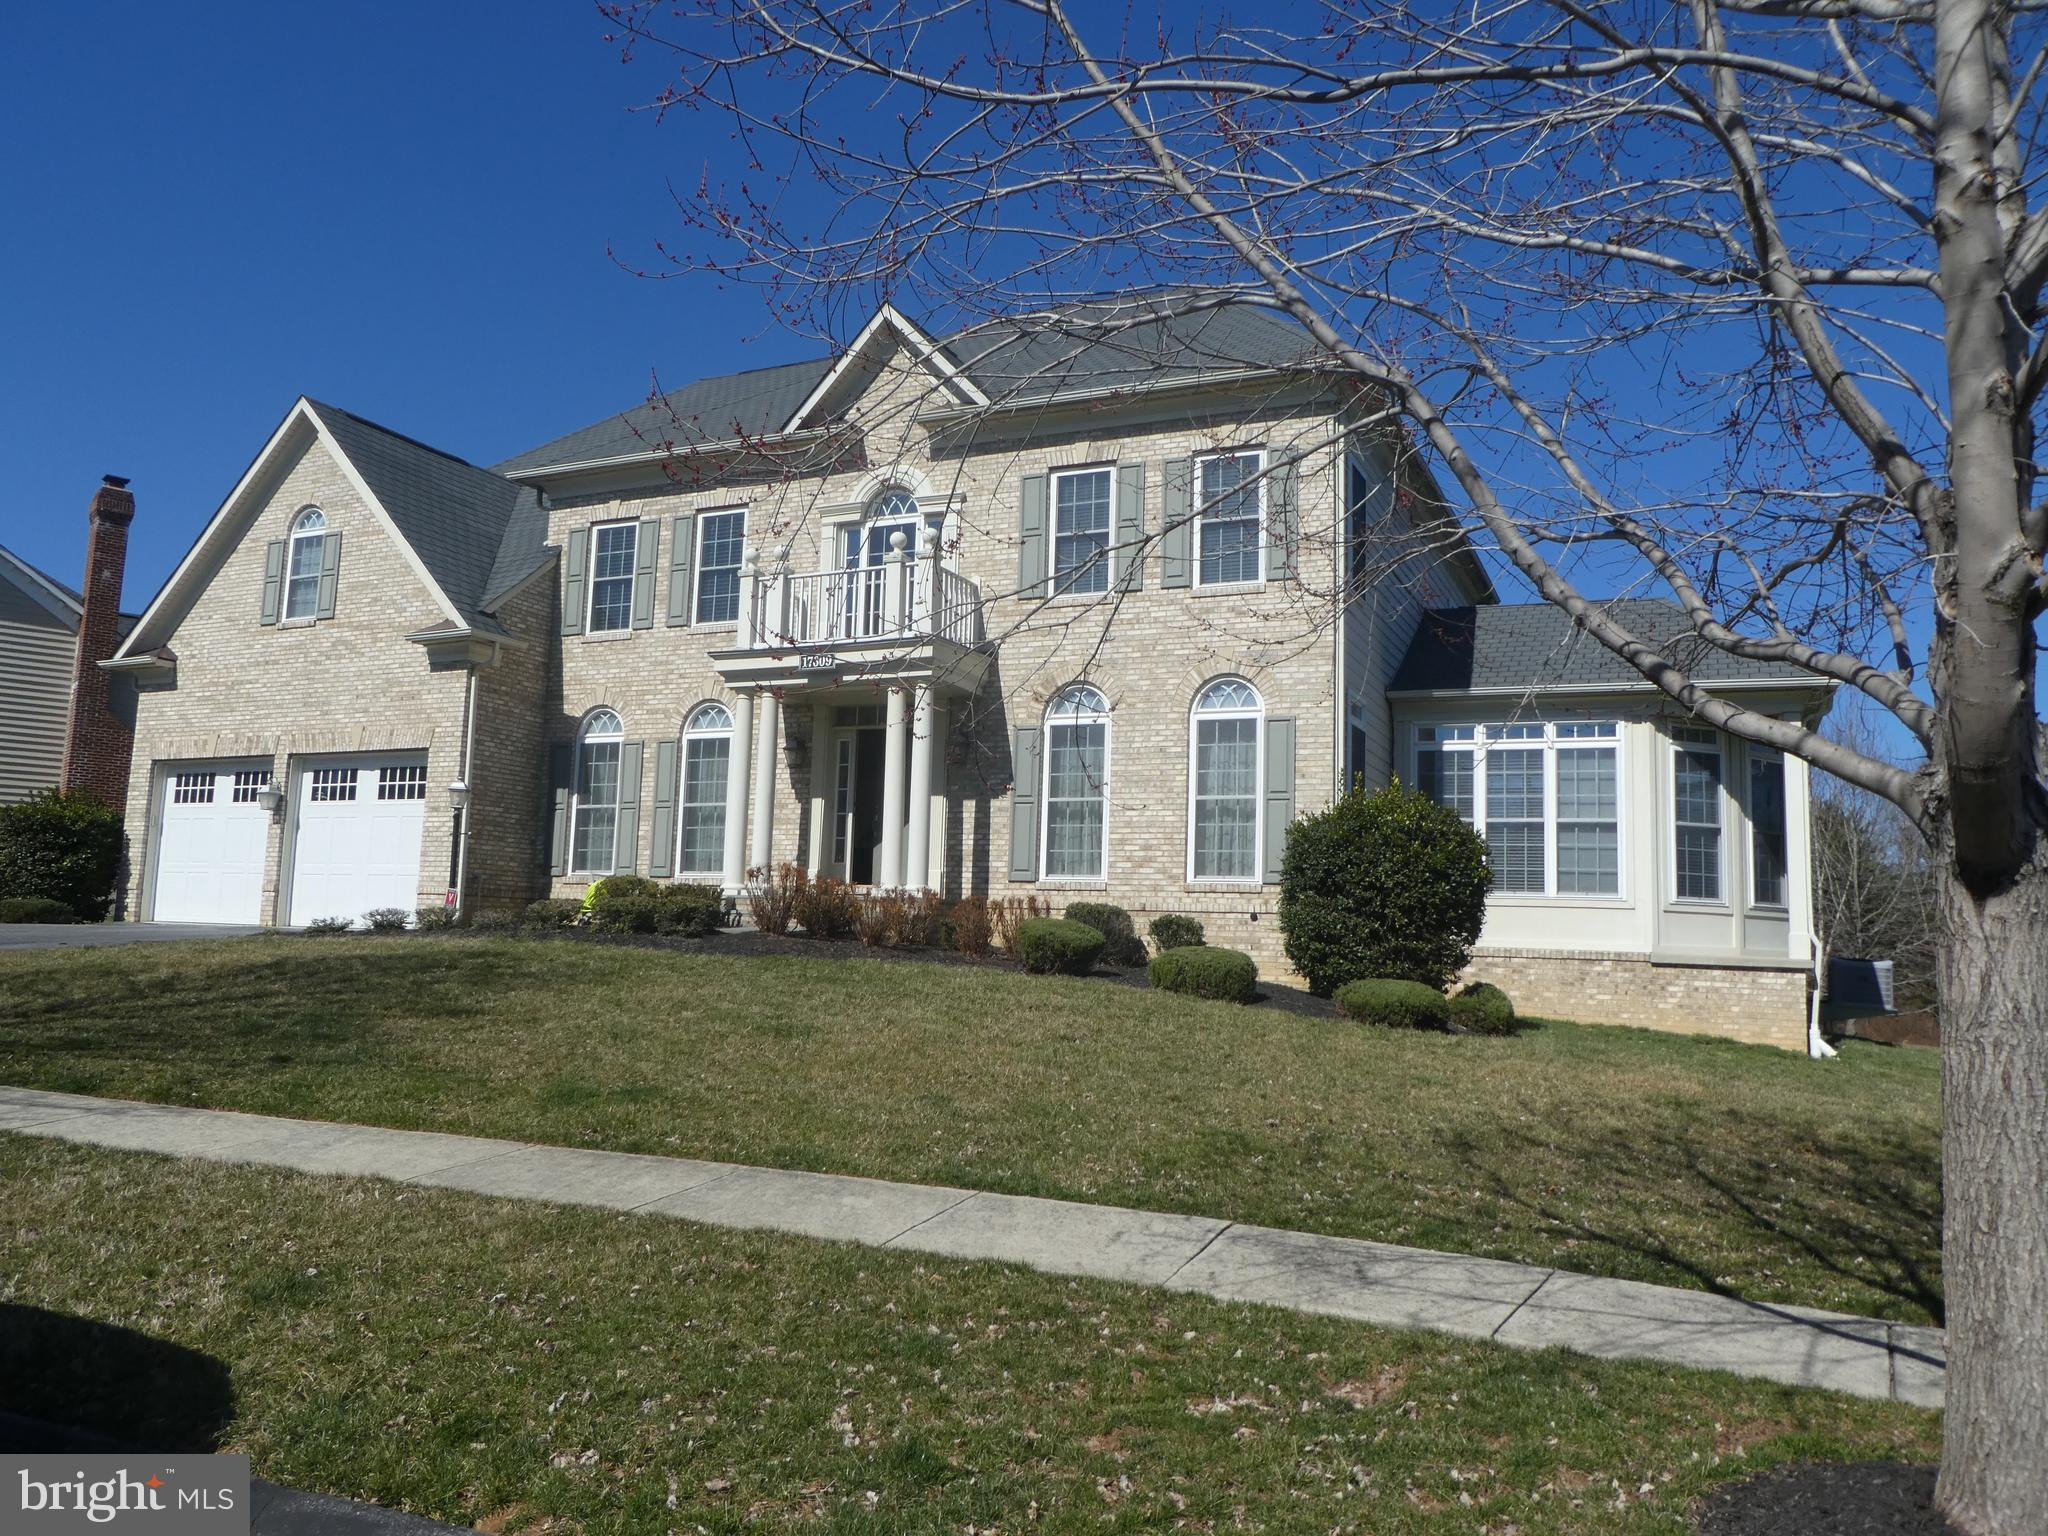 17609 AUBURN VILLAGE DRIVE, SANDY SPRING, MD 20860